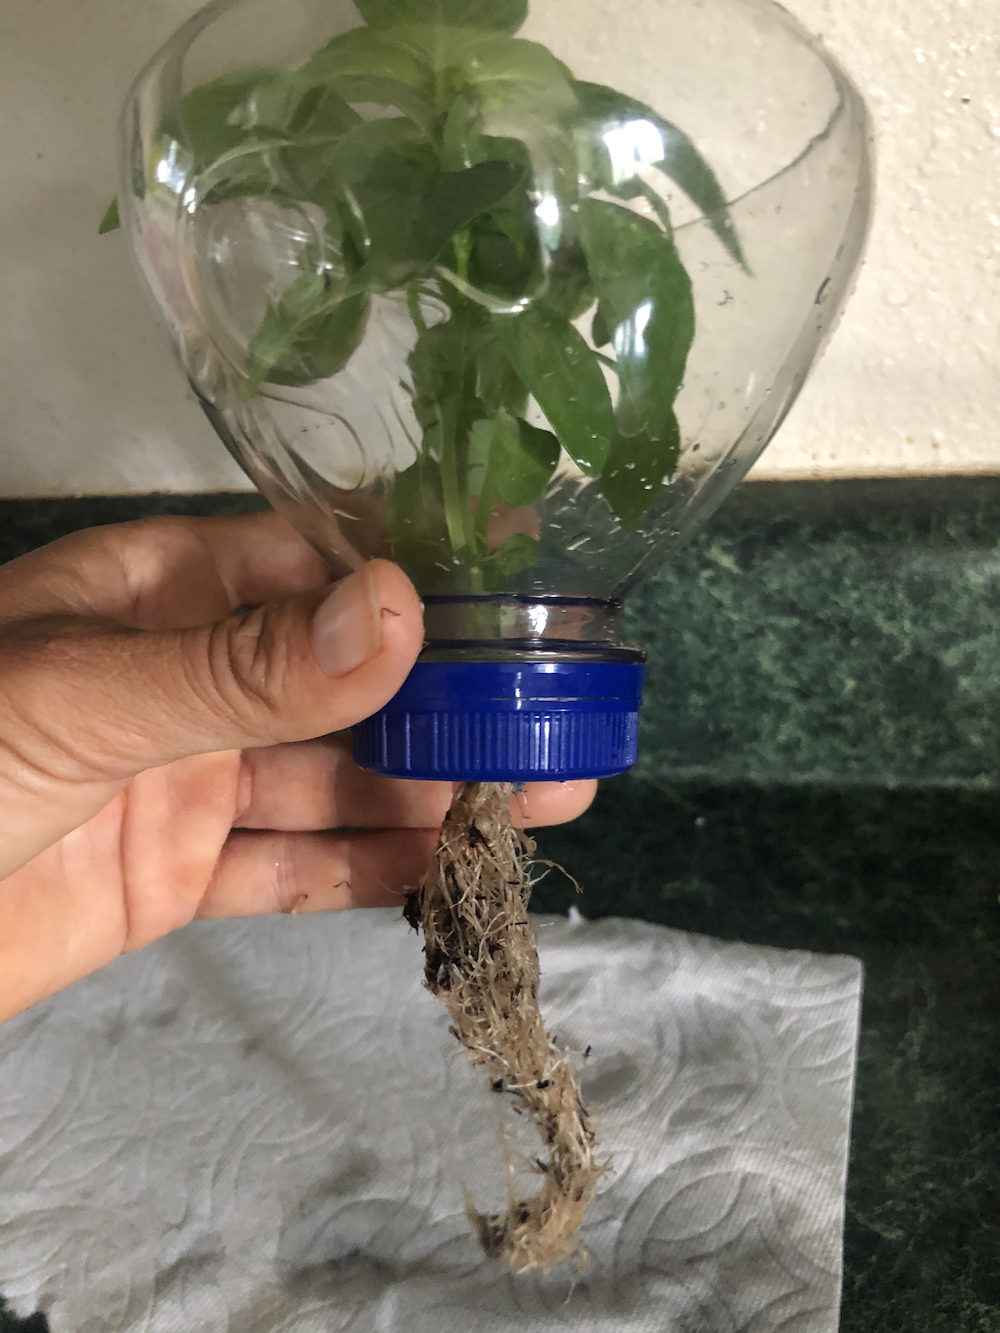 <p>Fig. 4b. Basil plant with roots pulled through the hole in the bottle cap.</p>